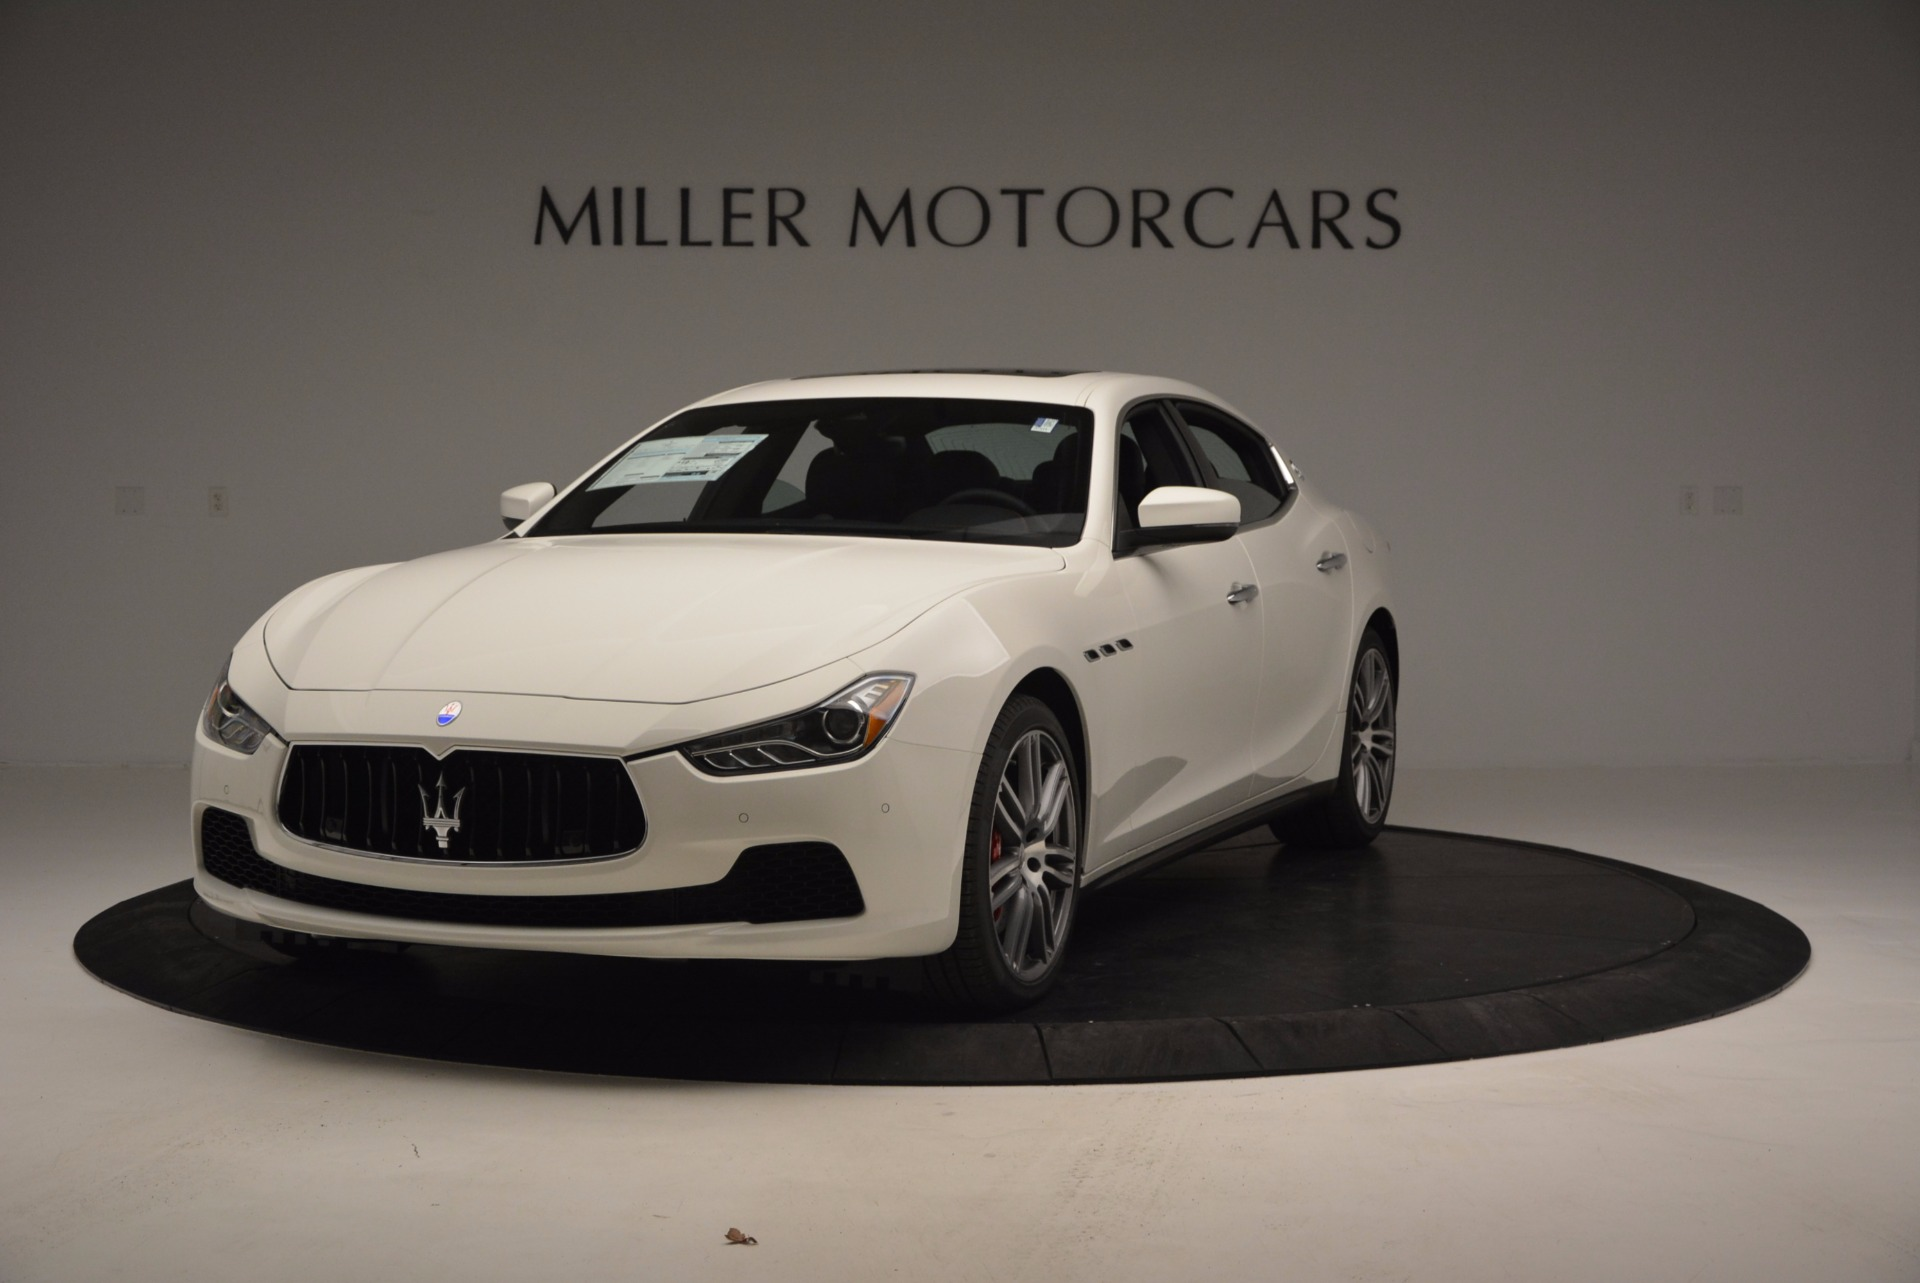 New 2017 Maserati Ghibli for sale Sold at Rolls-Royce Motor Cars Greenwich in Greenwich CT 06830 1